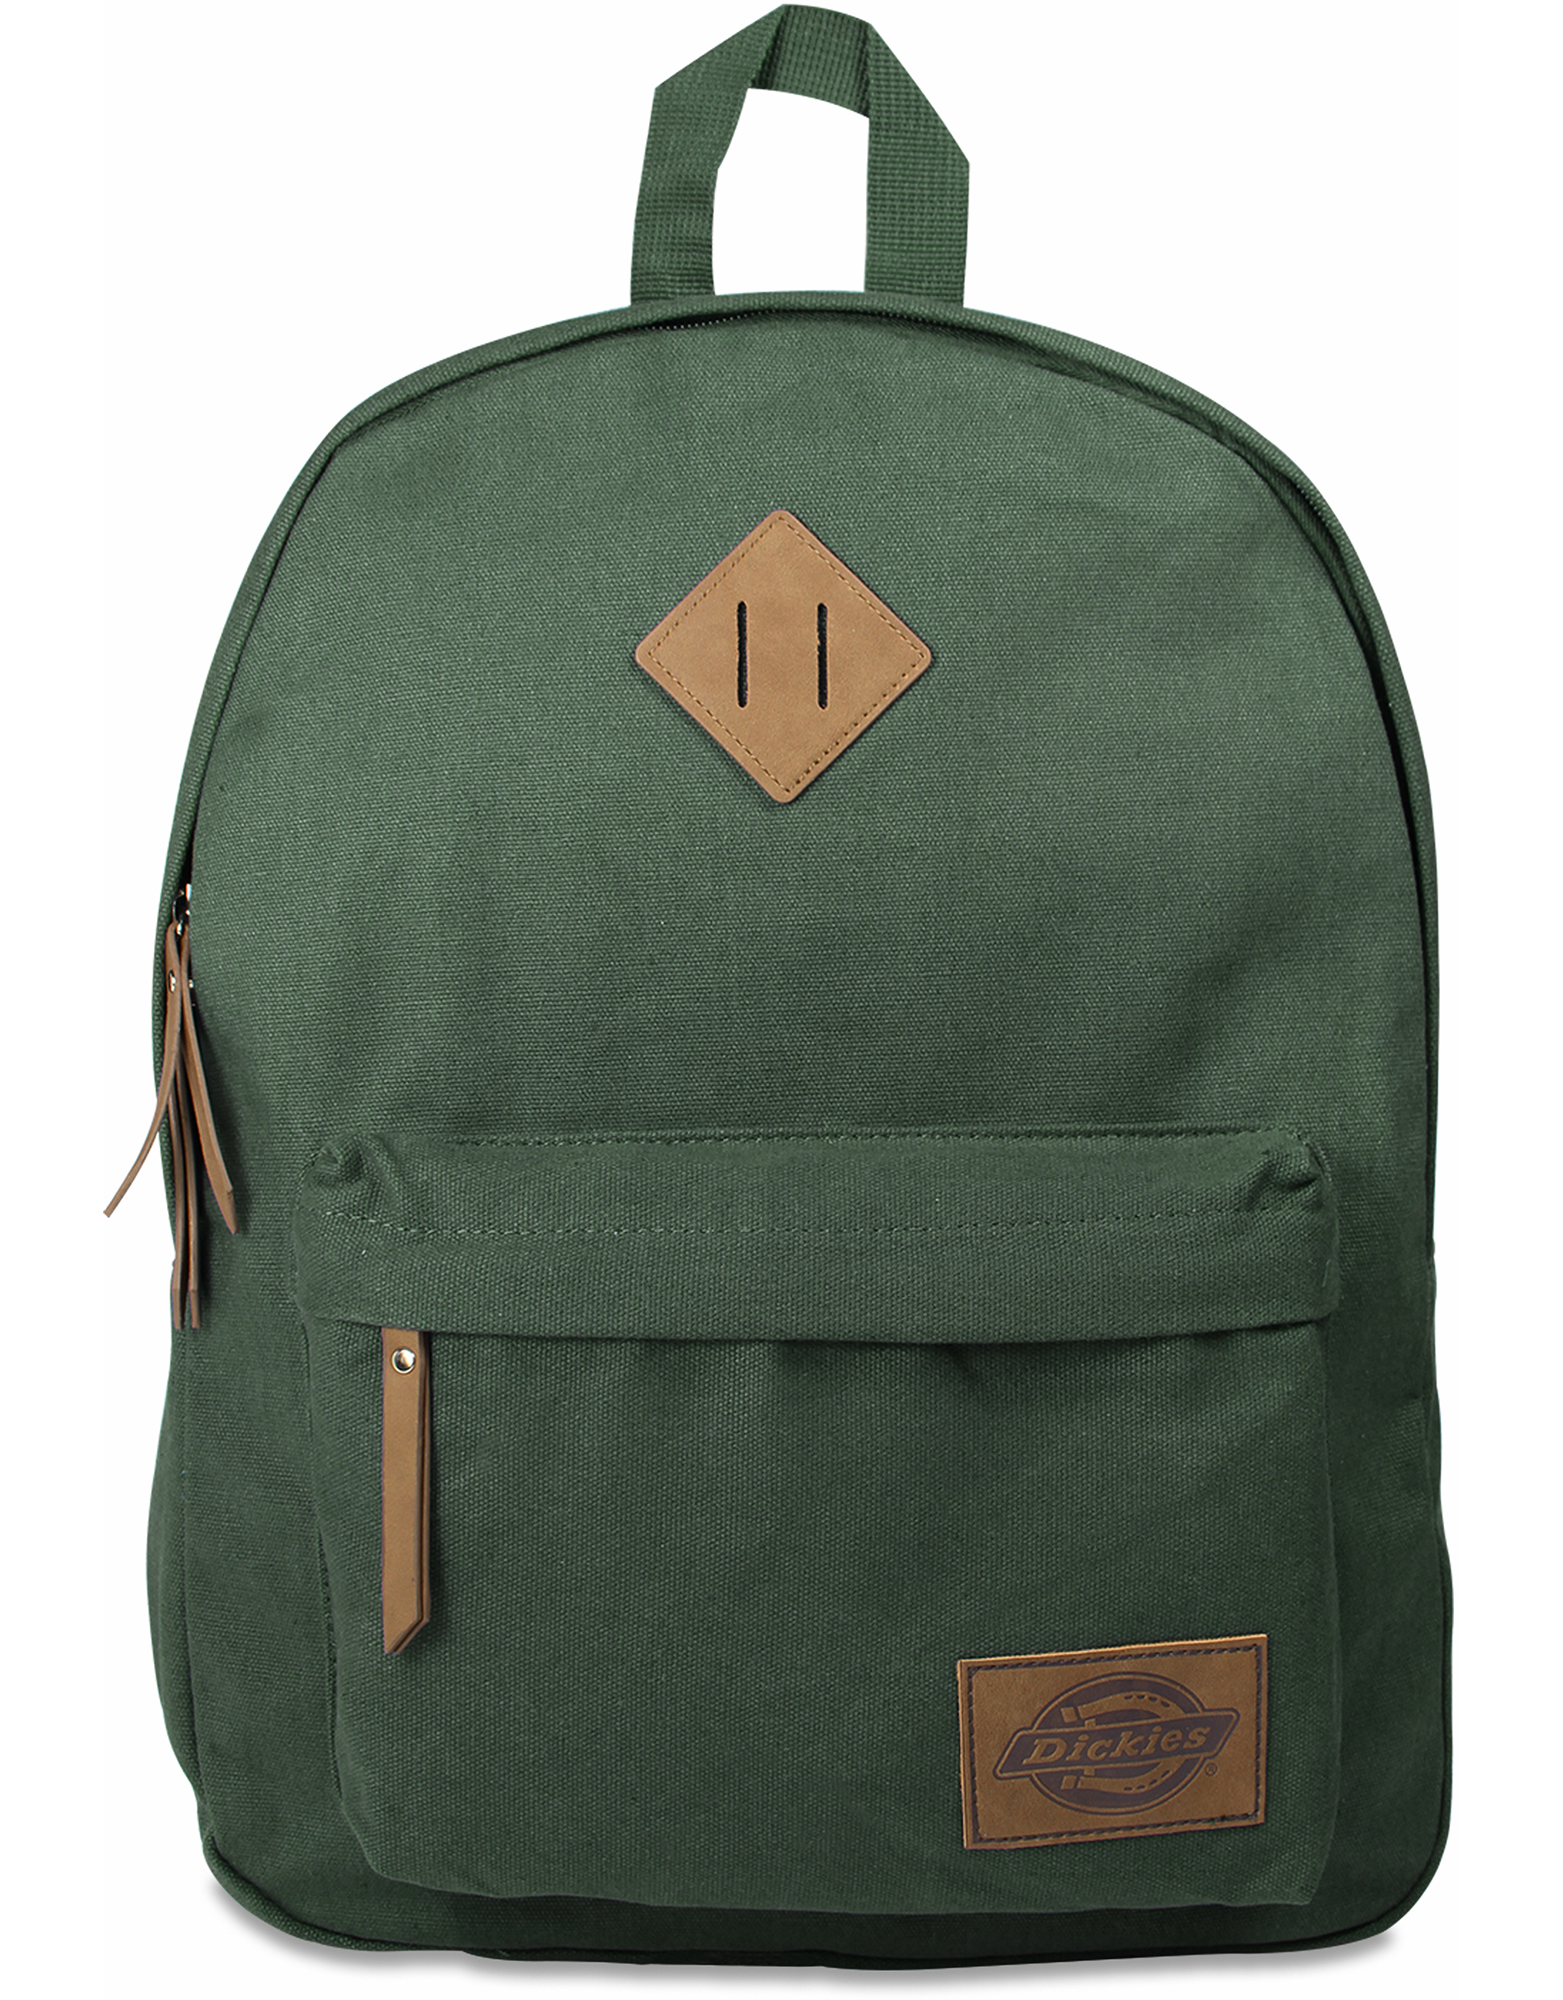 Classic Backpack - Forest Green (FT)